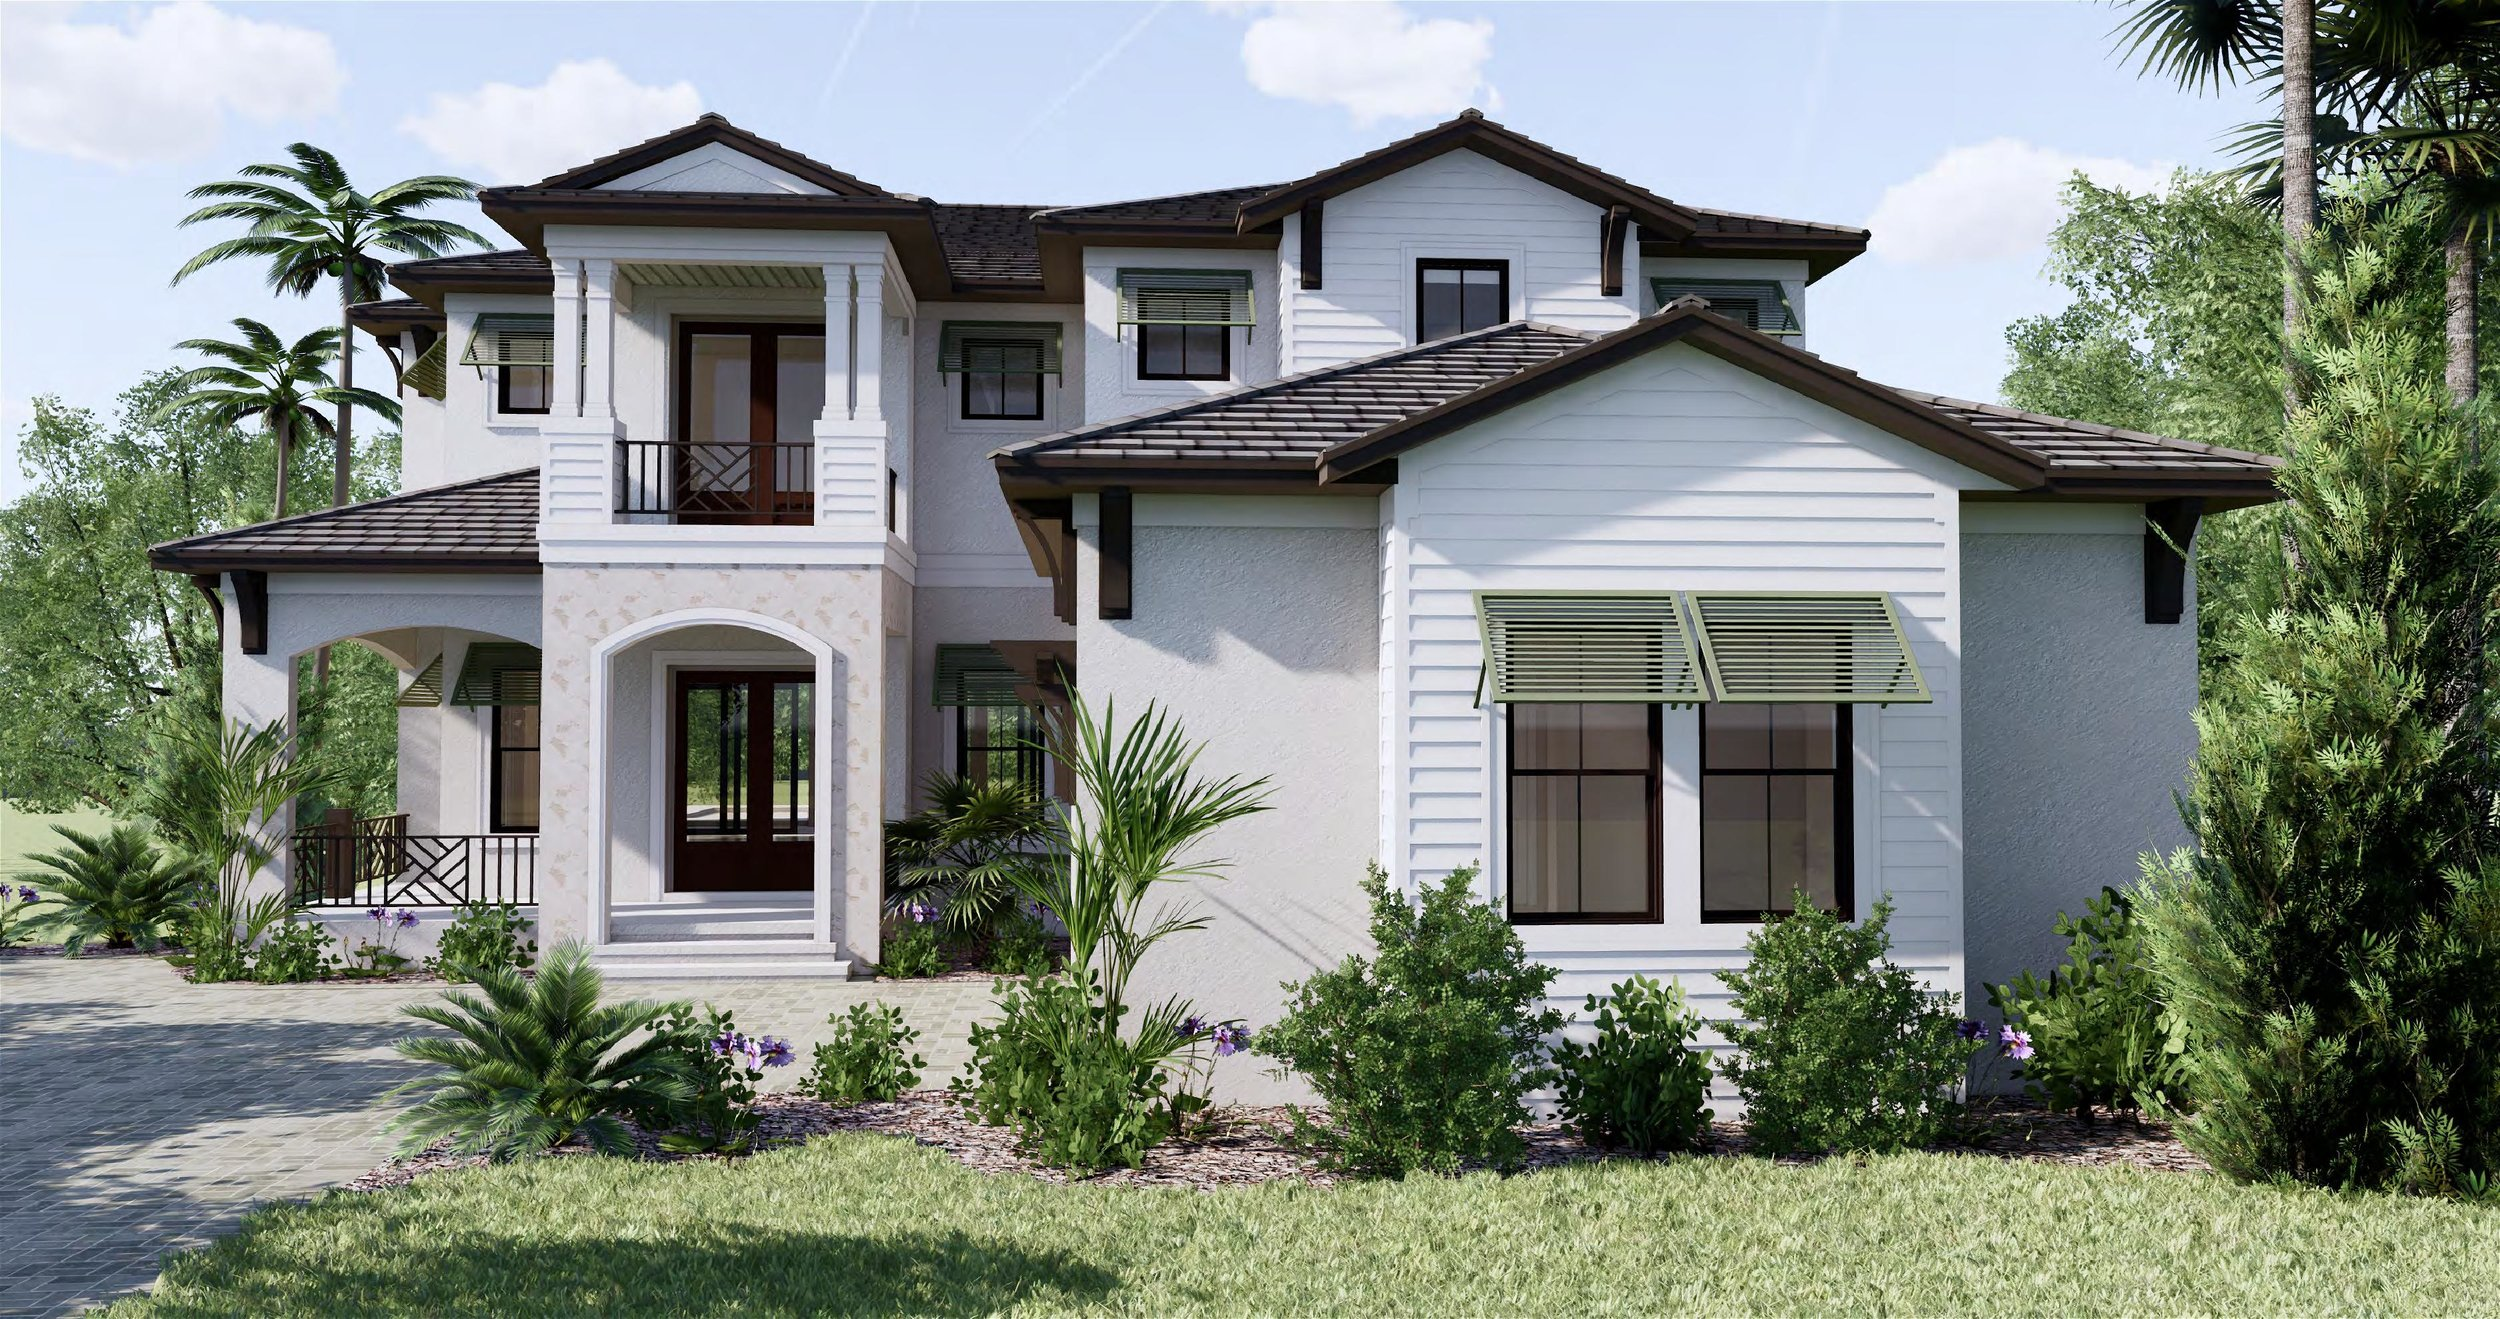 Pages from MAJESTIK UPDATED EXTERIOR 03-2-page-001.jpg